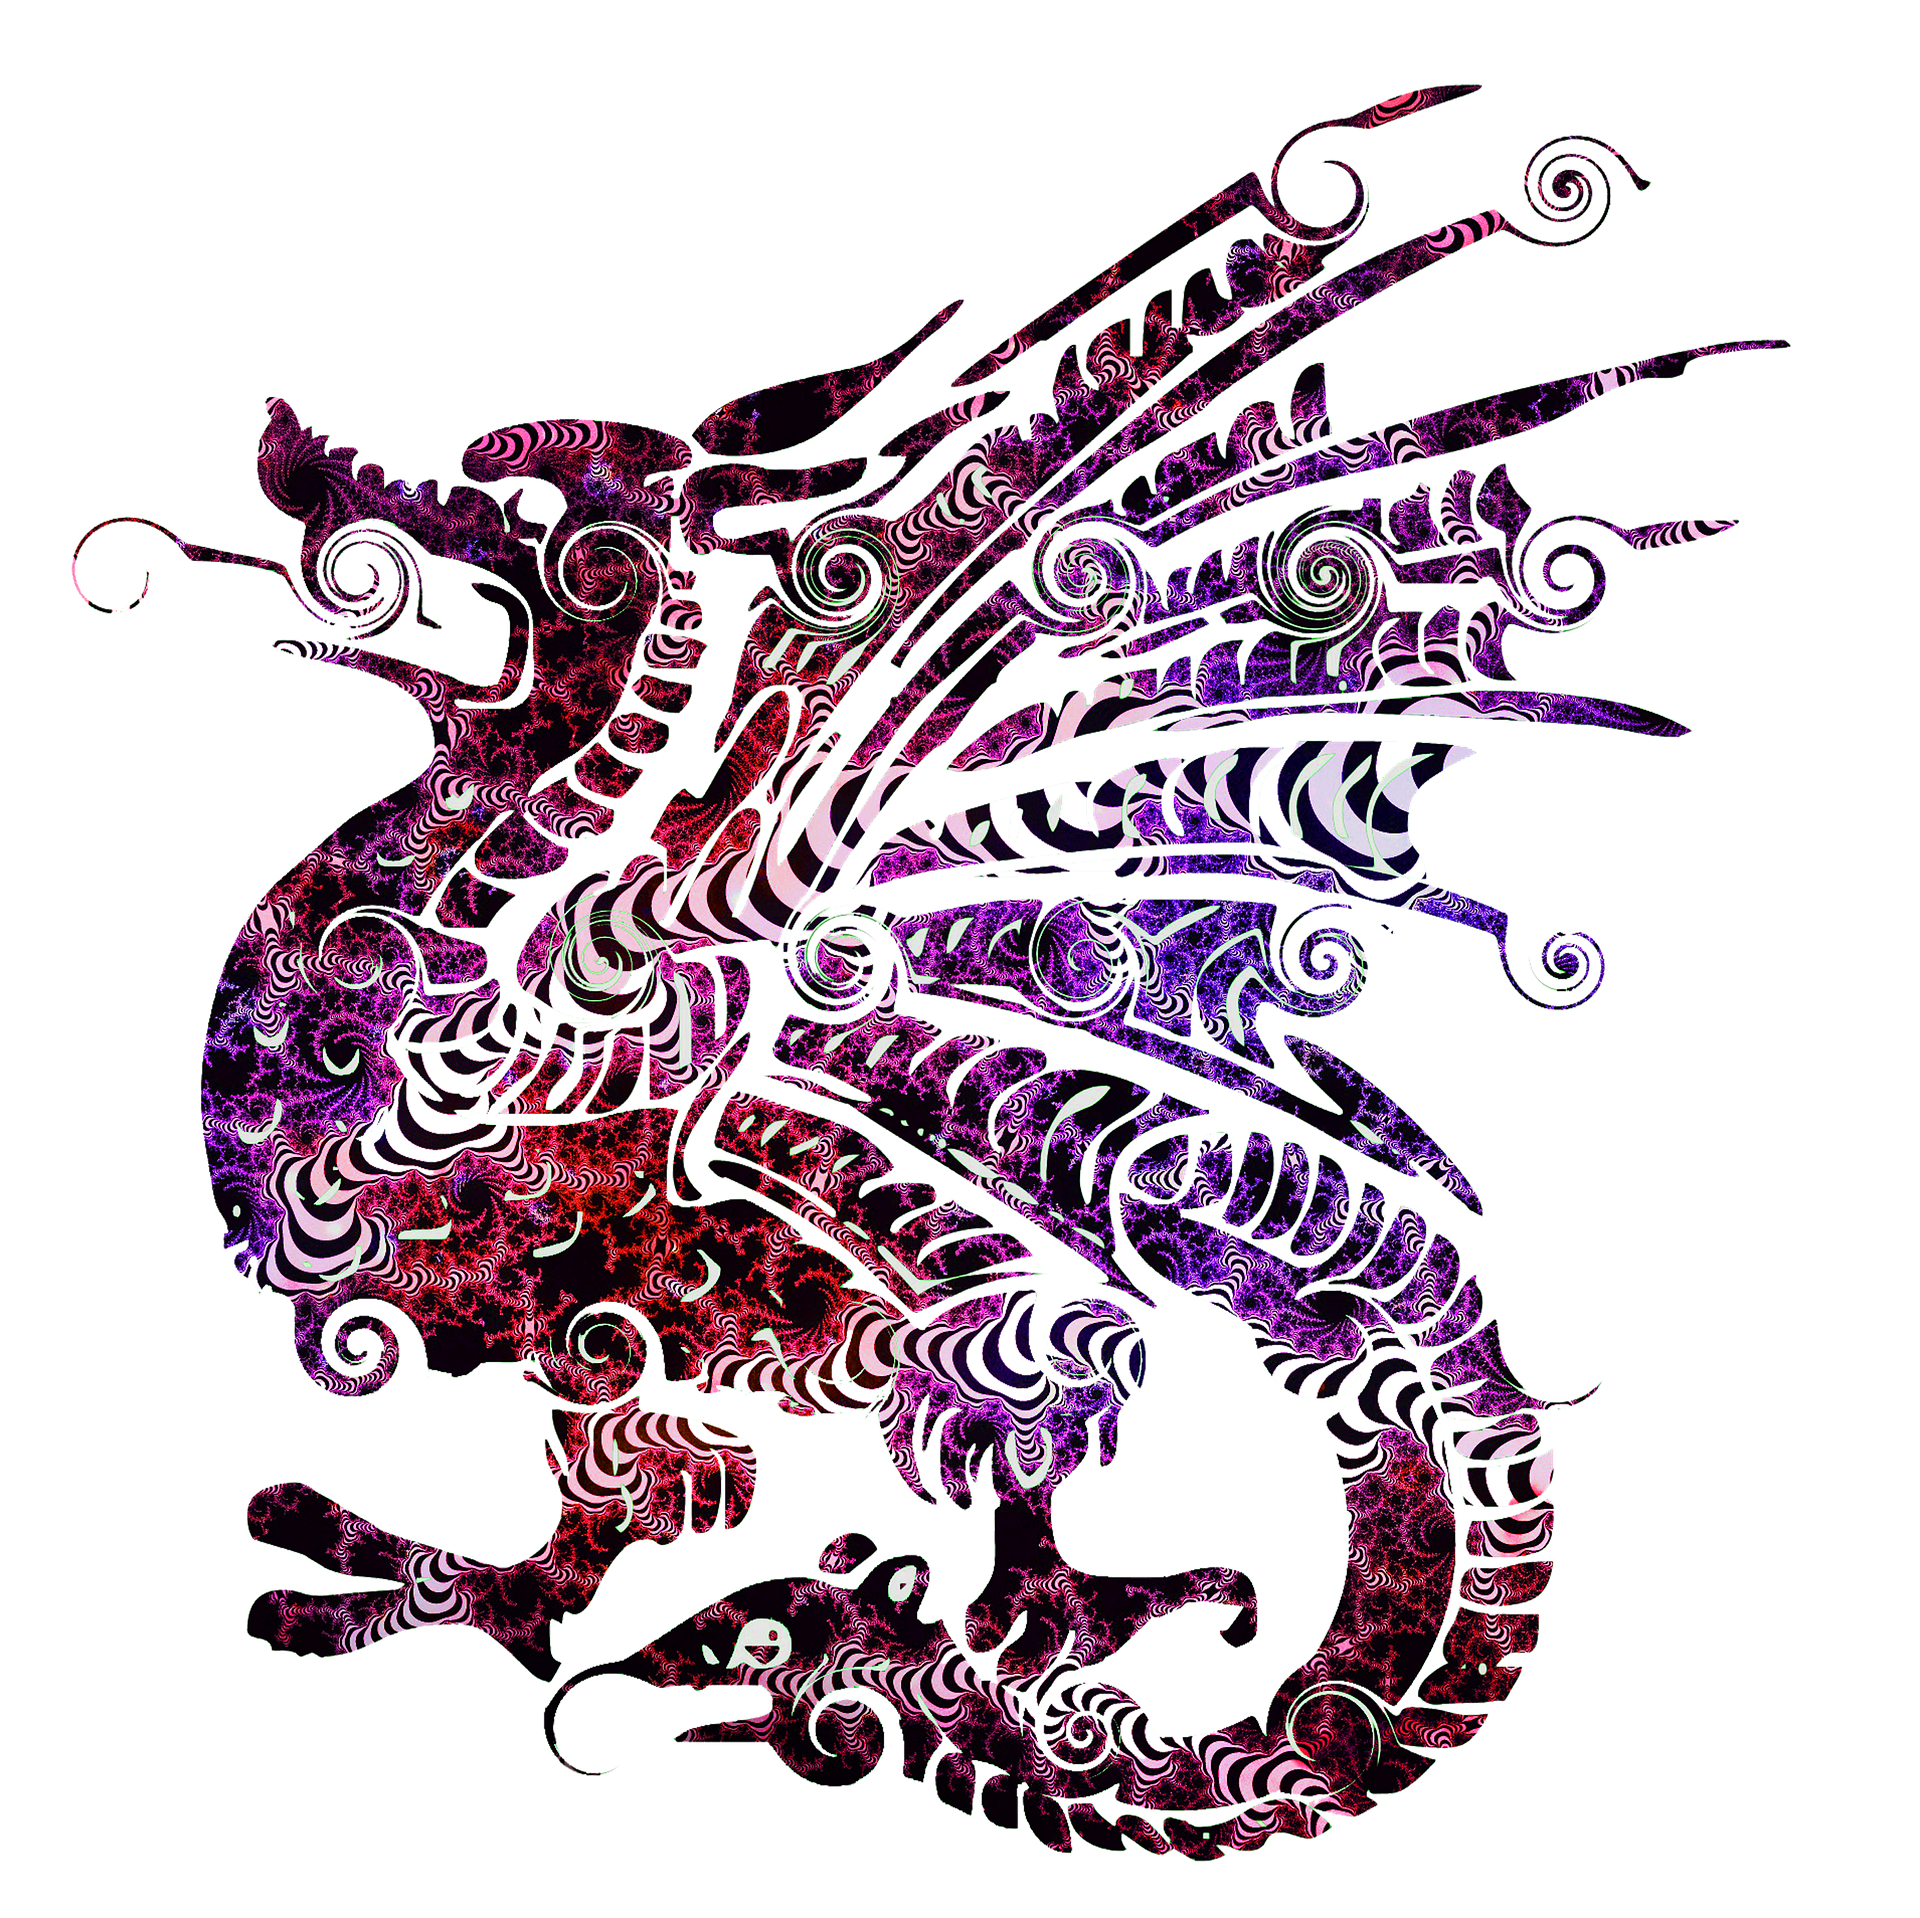 dragon-986054_1920.png